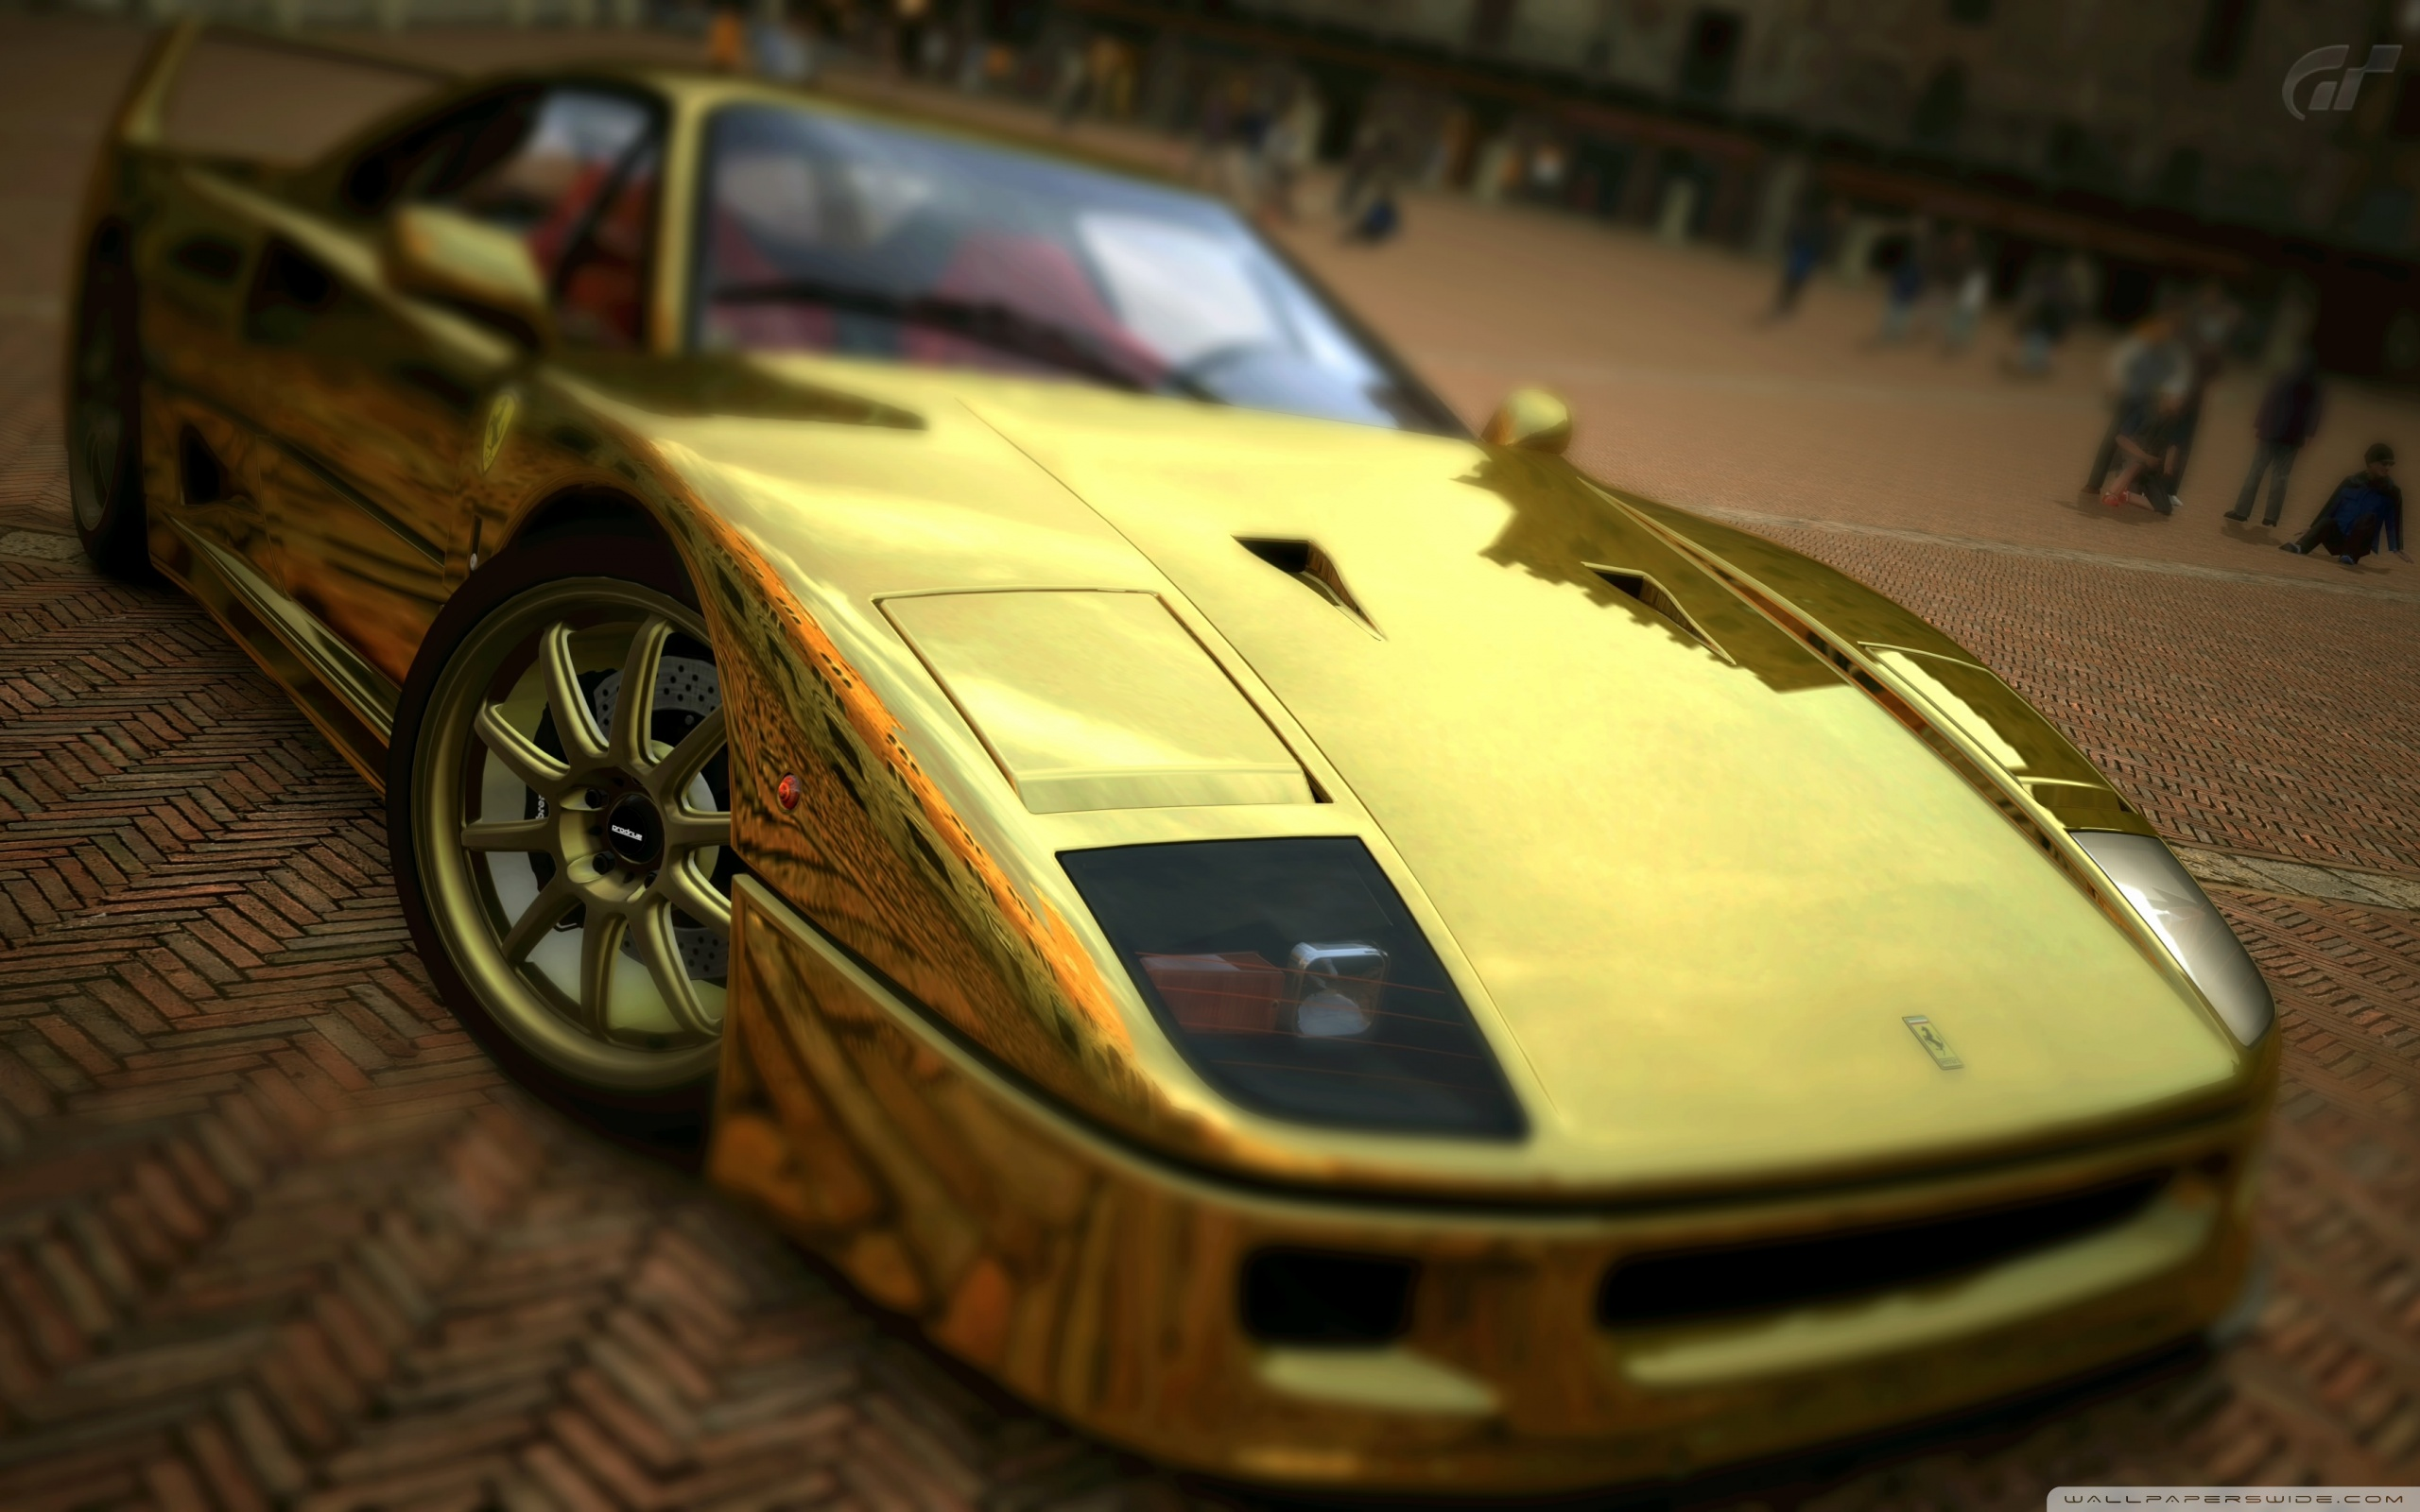 Download Car Wallpapers For Laptop Ferrari F40 Gold 4k Hd Desktop Wallpaper For 4k Ultra Hd